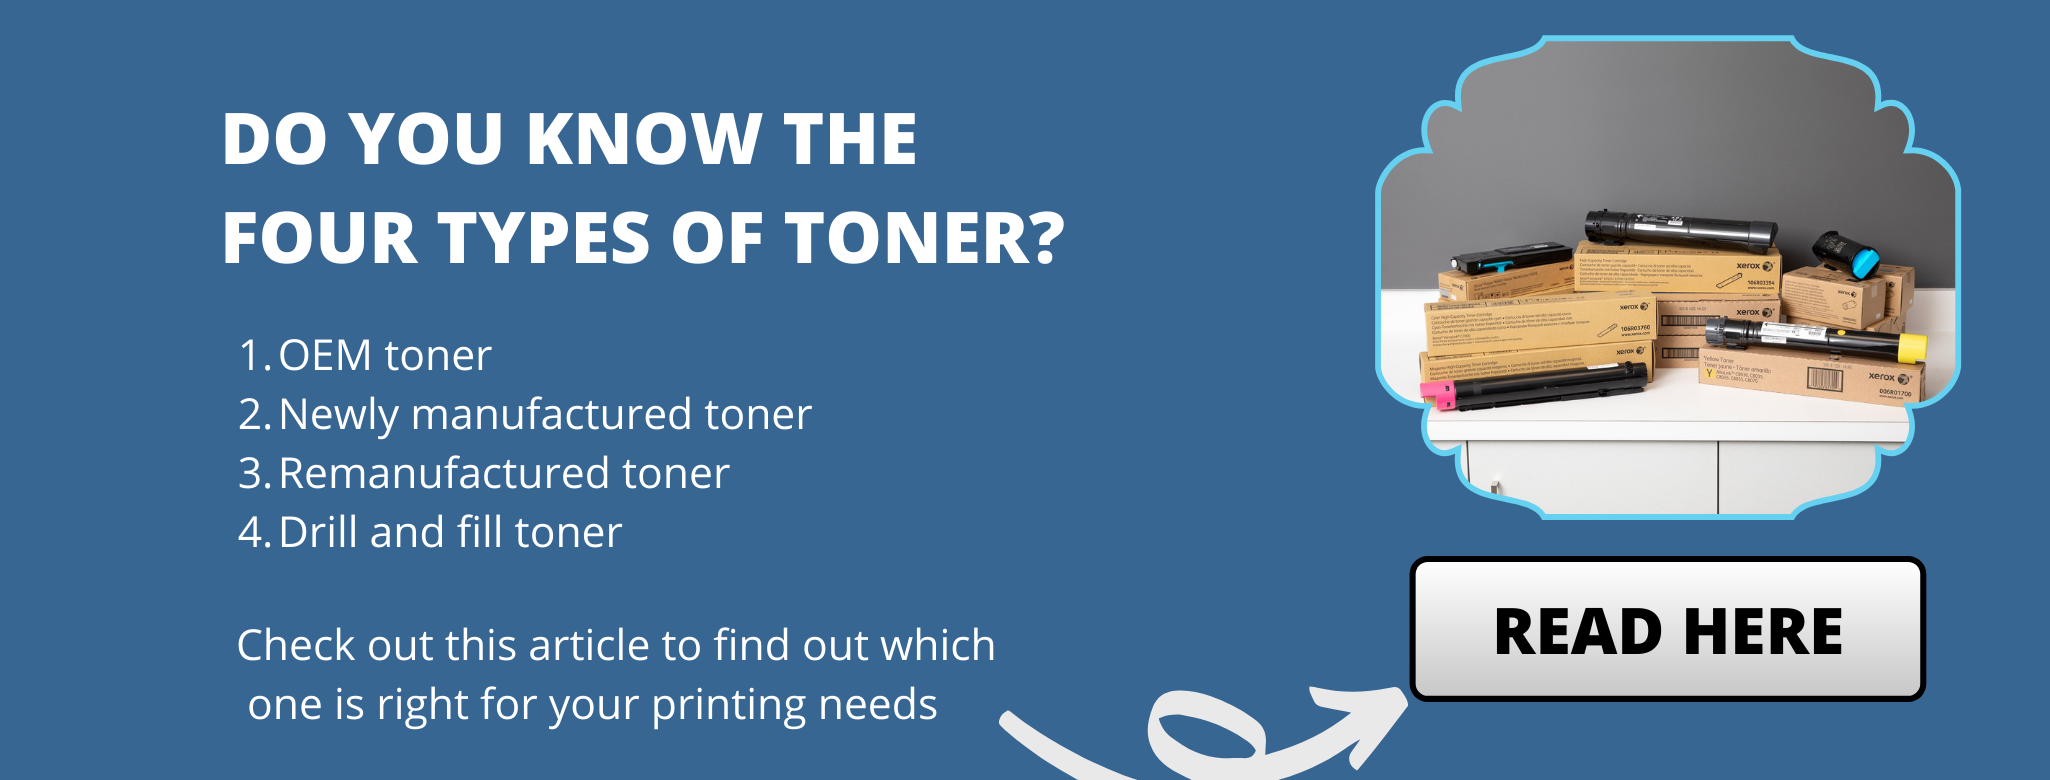 Infographic: Do you know the four types of toner?